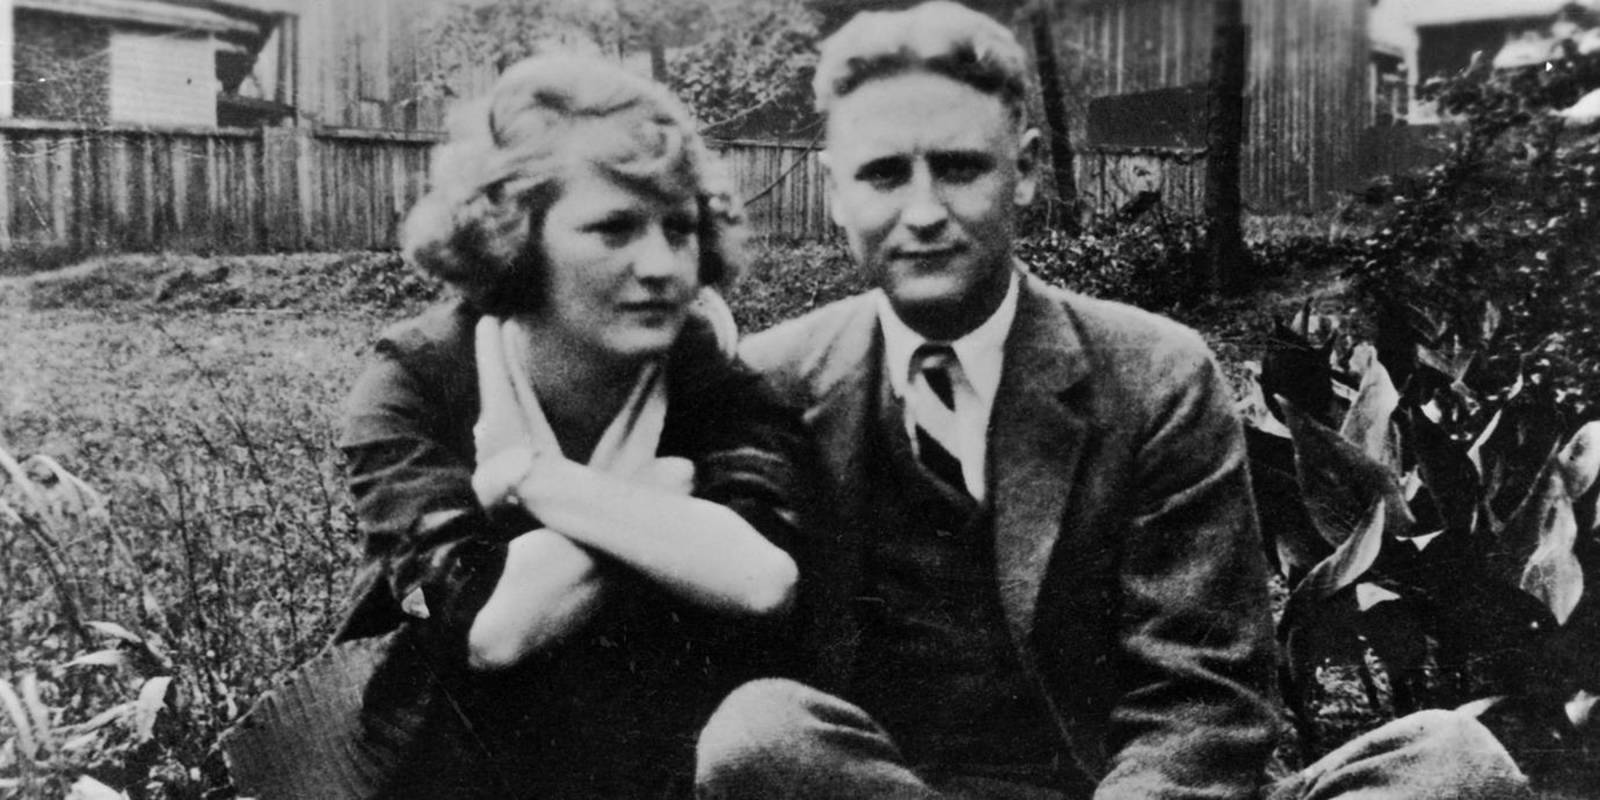 the life of zelda fitzgerald essay Zelda fitzgerald is best known as the wife of f scott fitzgerald, the quintessential novelist of the jazz age, the roaring twenties at his side, she was the toast.